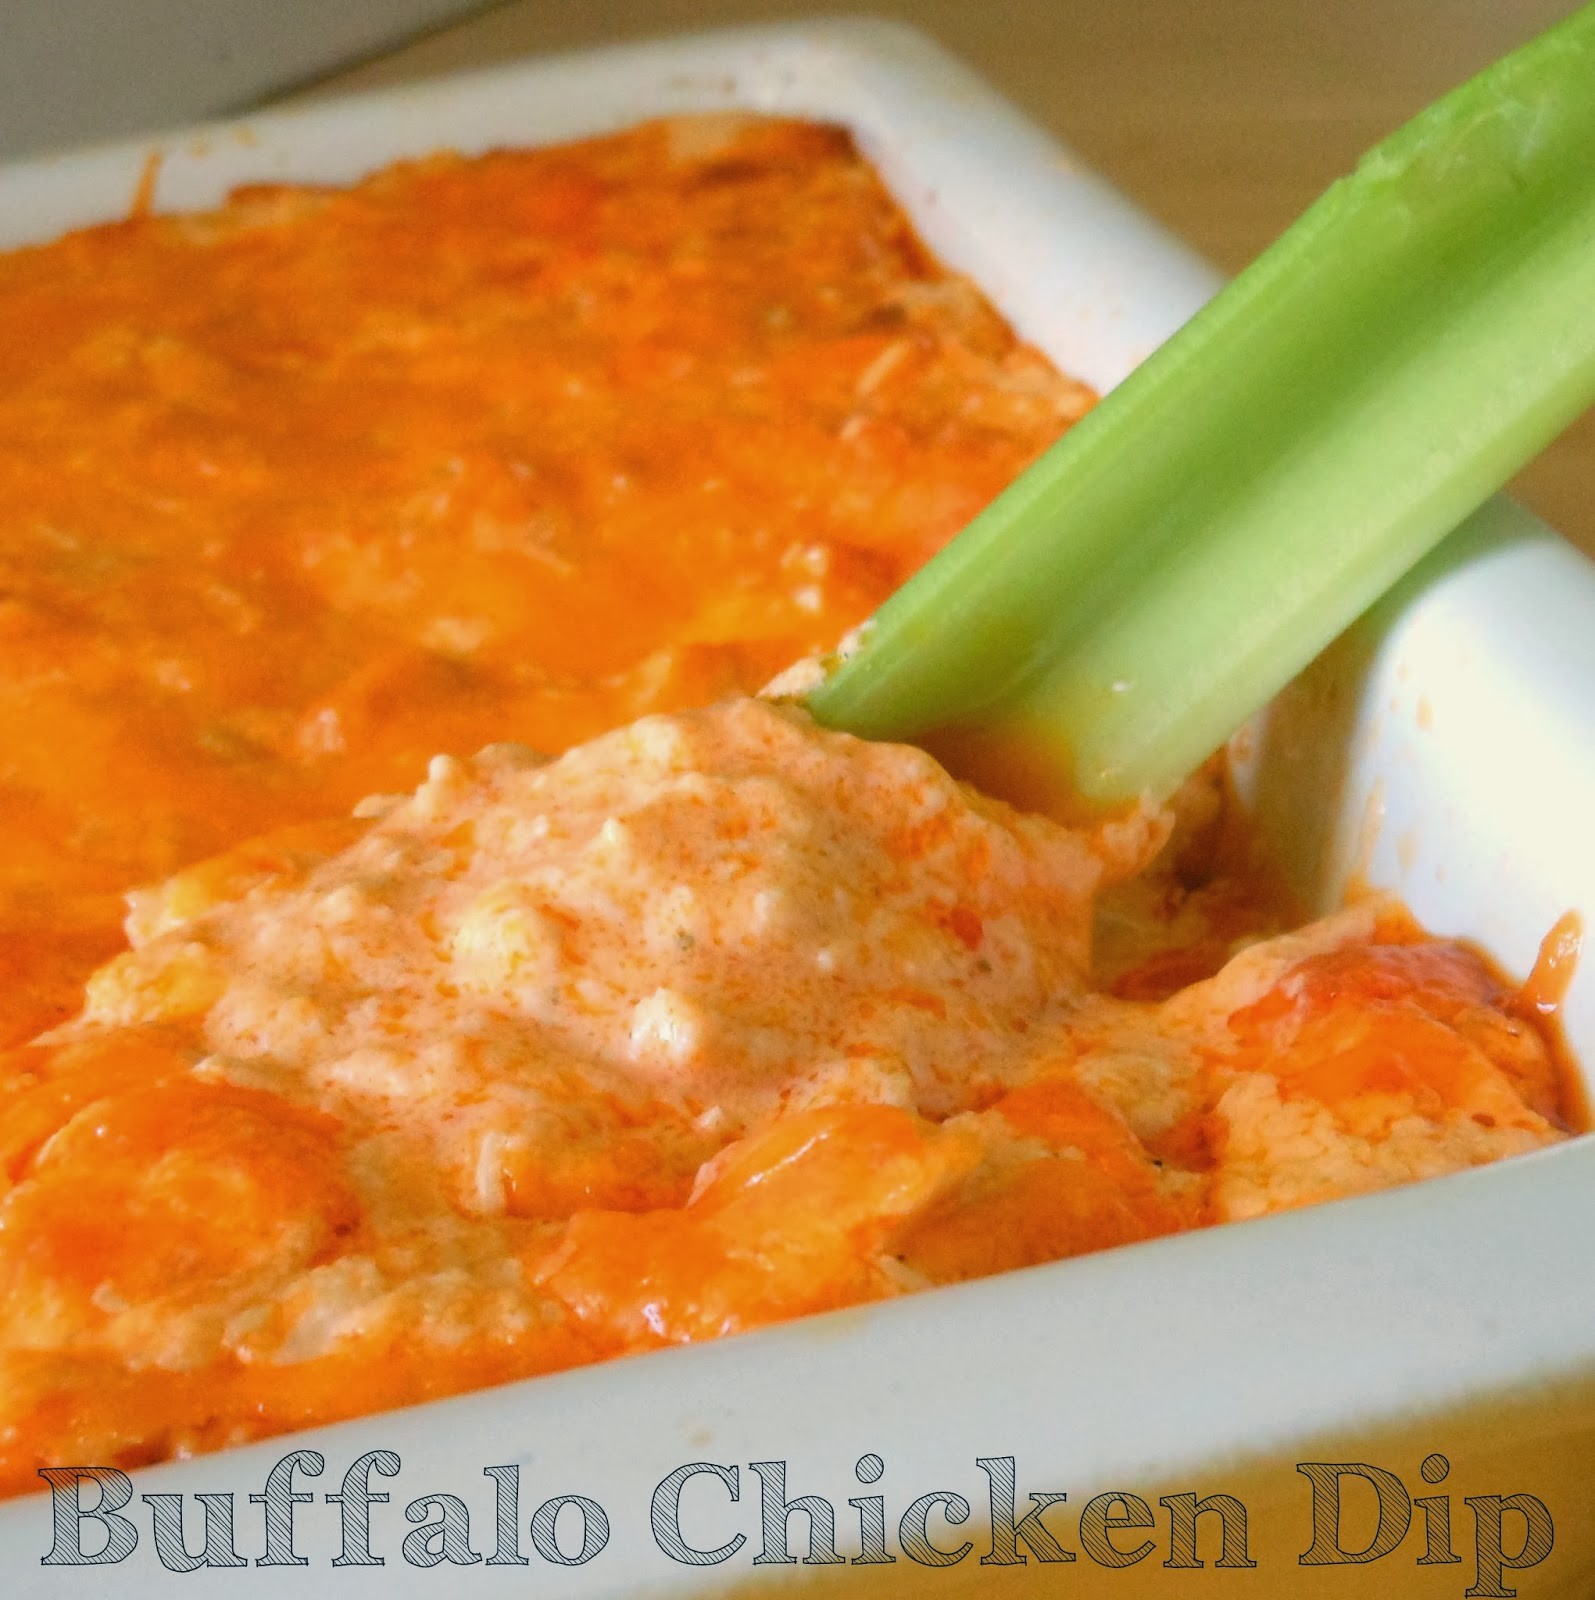 Franks red hot Buffalo chicken dip. I cannot get enough of this dip!